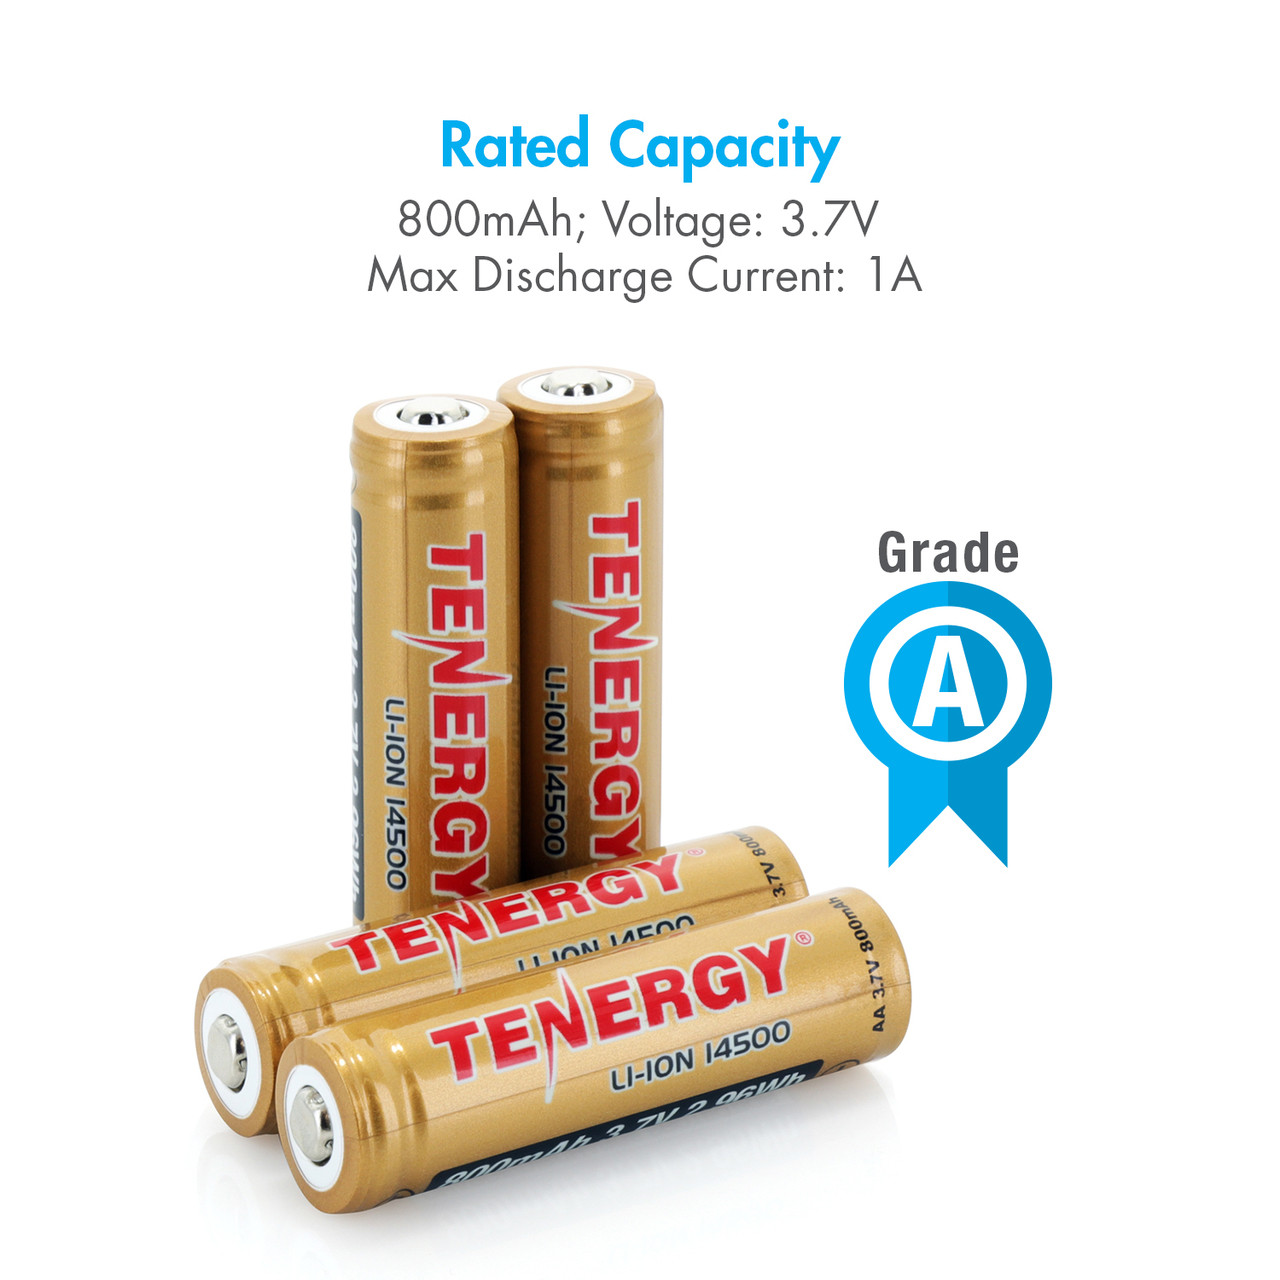 Tenergy 3.7V 800mAh Protected 14500 Li-ion Rechargeable Battery, Button Top, 2.96Wh (4-pk)